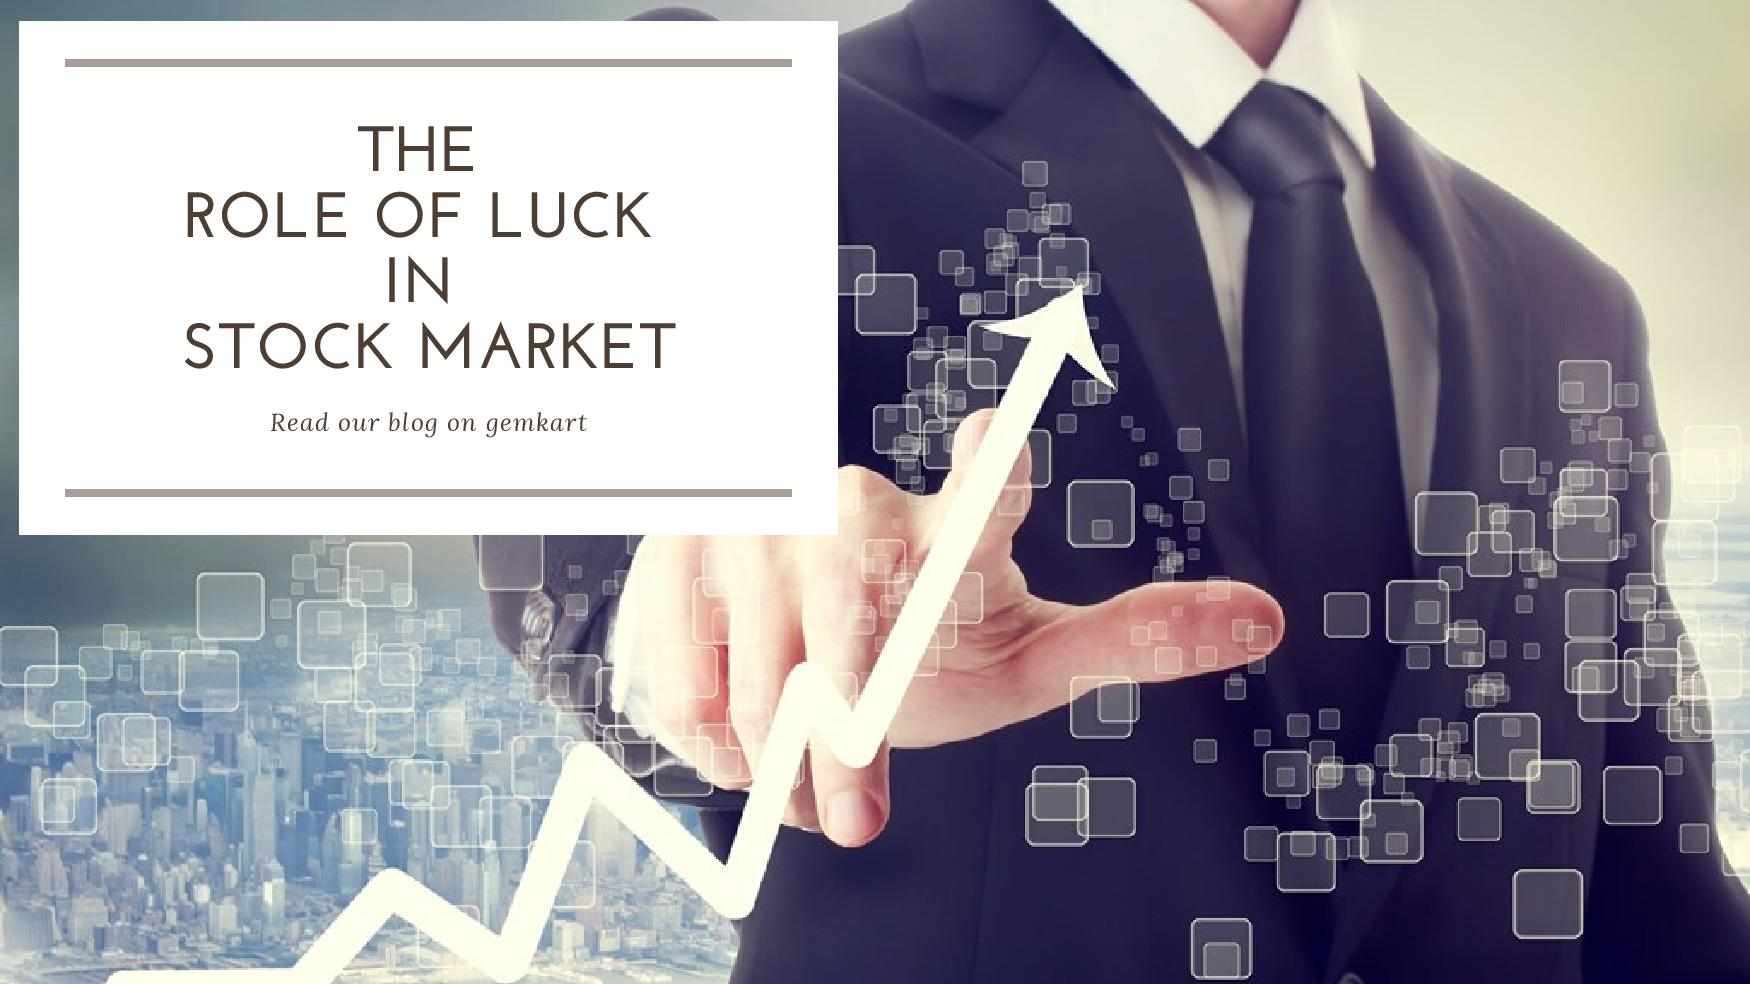 The Role of Luck in Stock Market